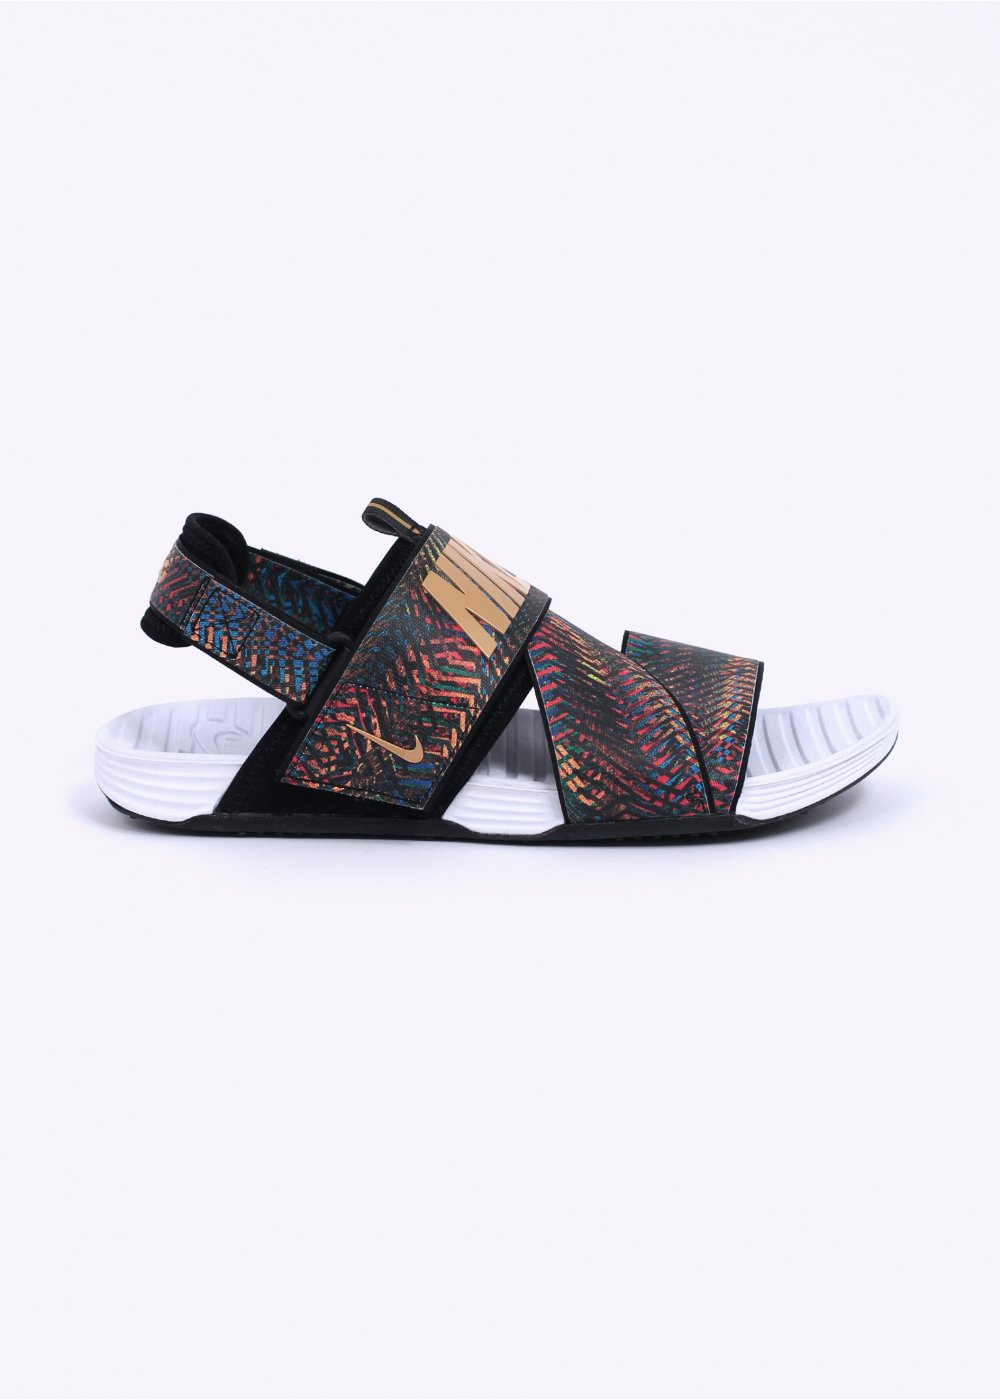 58b968e55a33 Nike Solarsoft ZigZag QS Sandals - Tour Yellow   Black   Gold